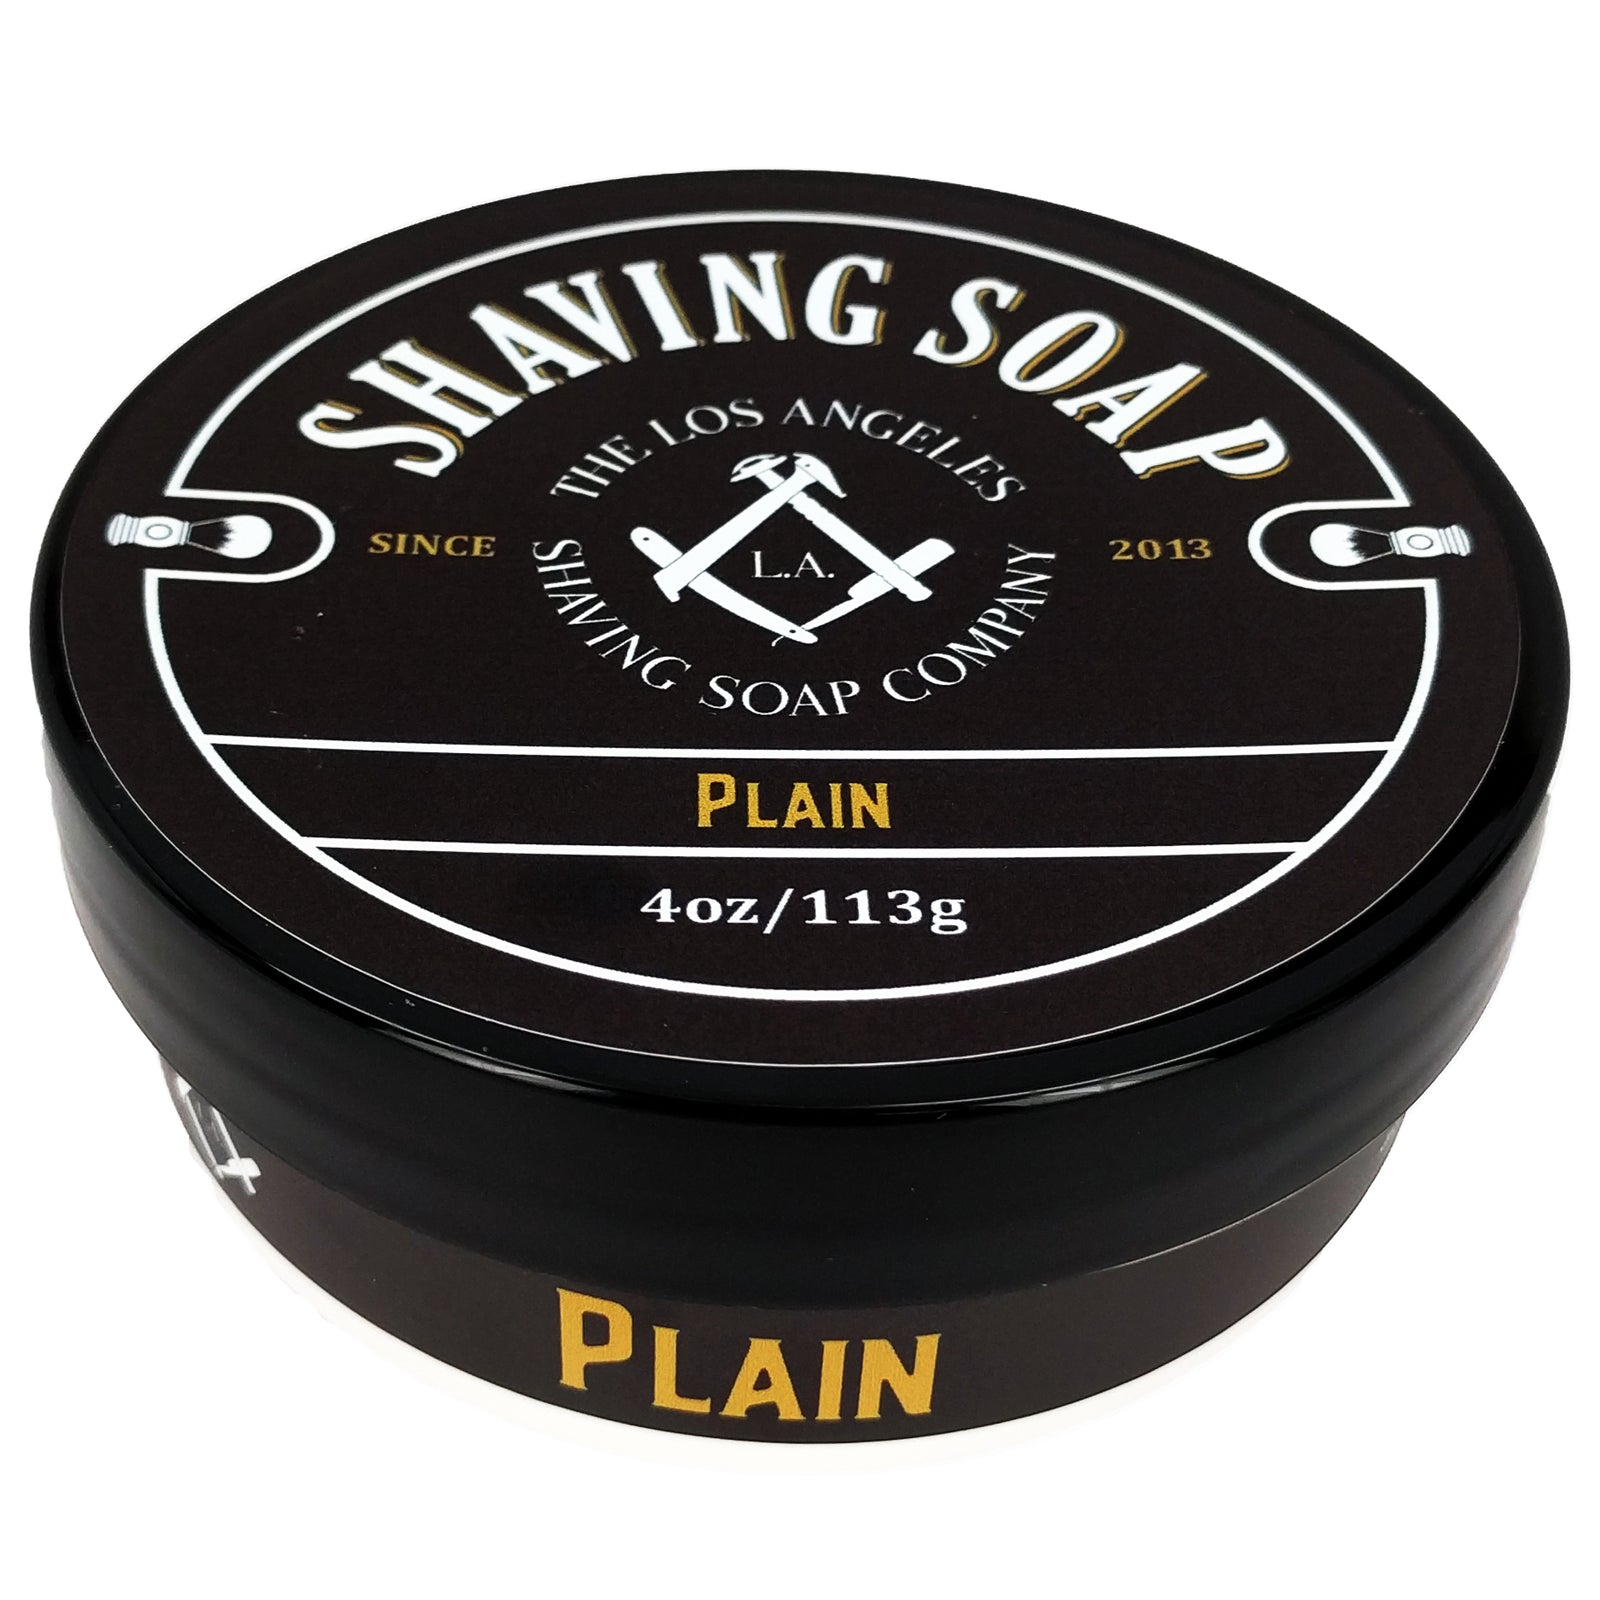 LA Shaving Soap Co – Plain Shaving Soap